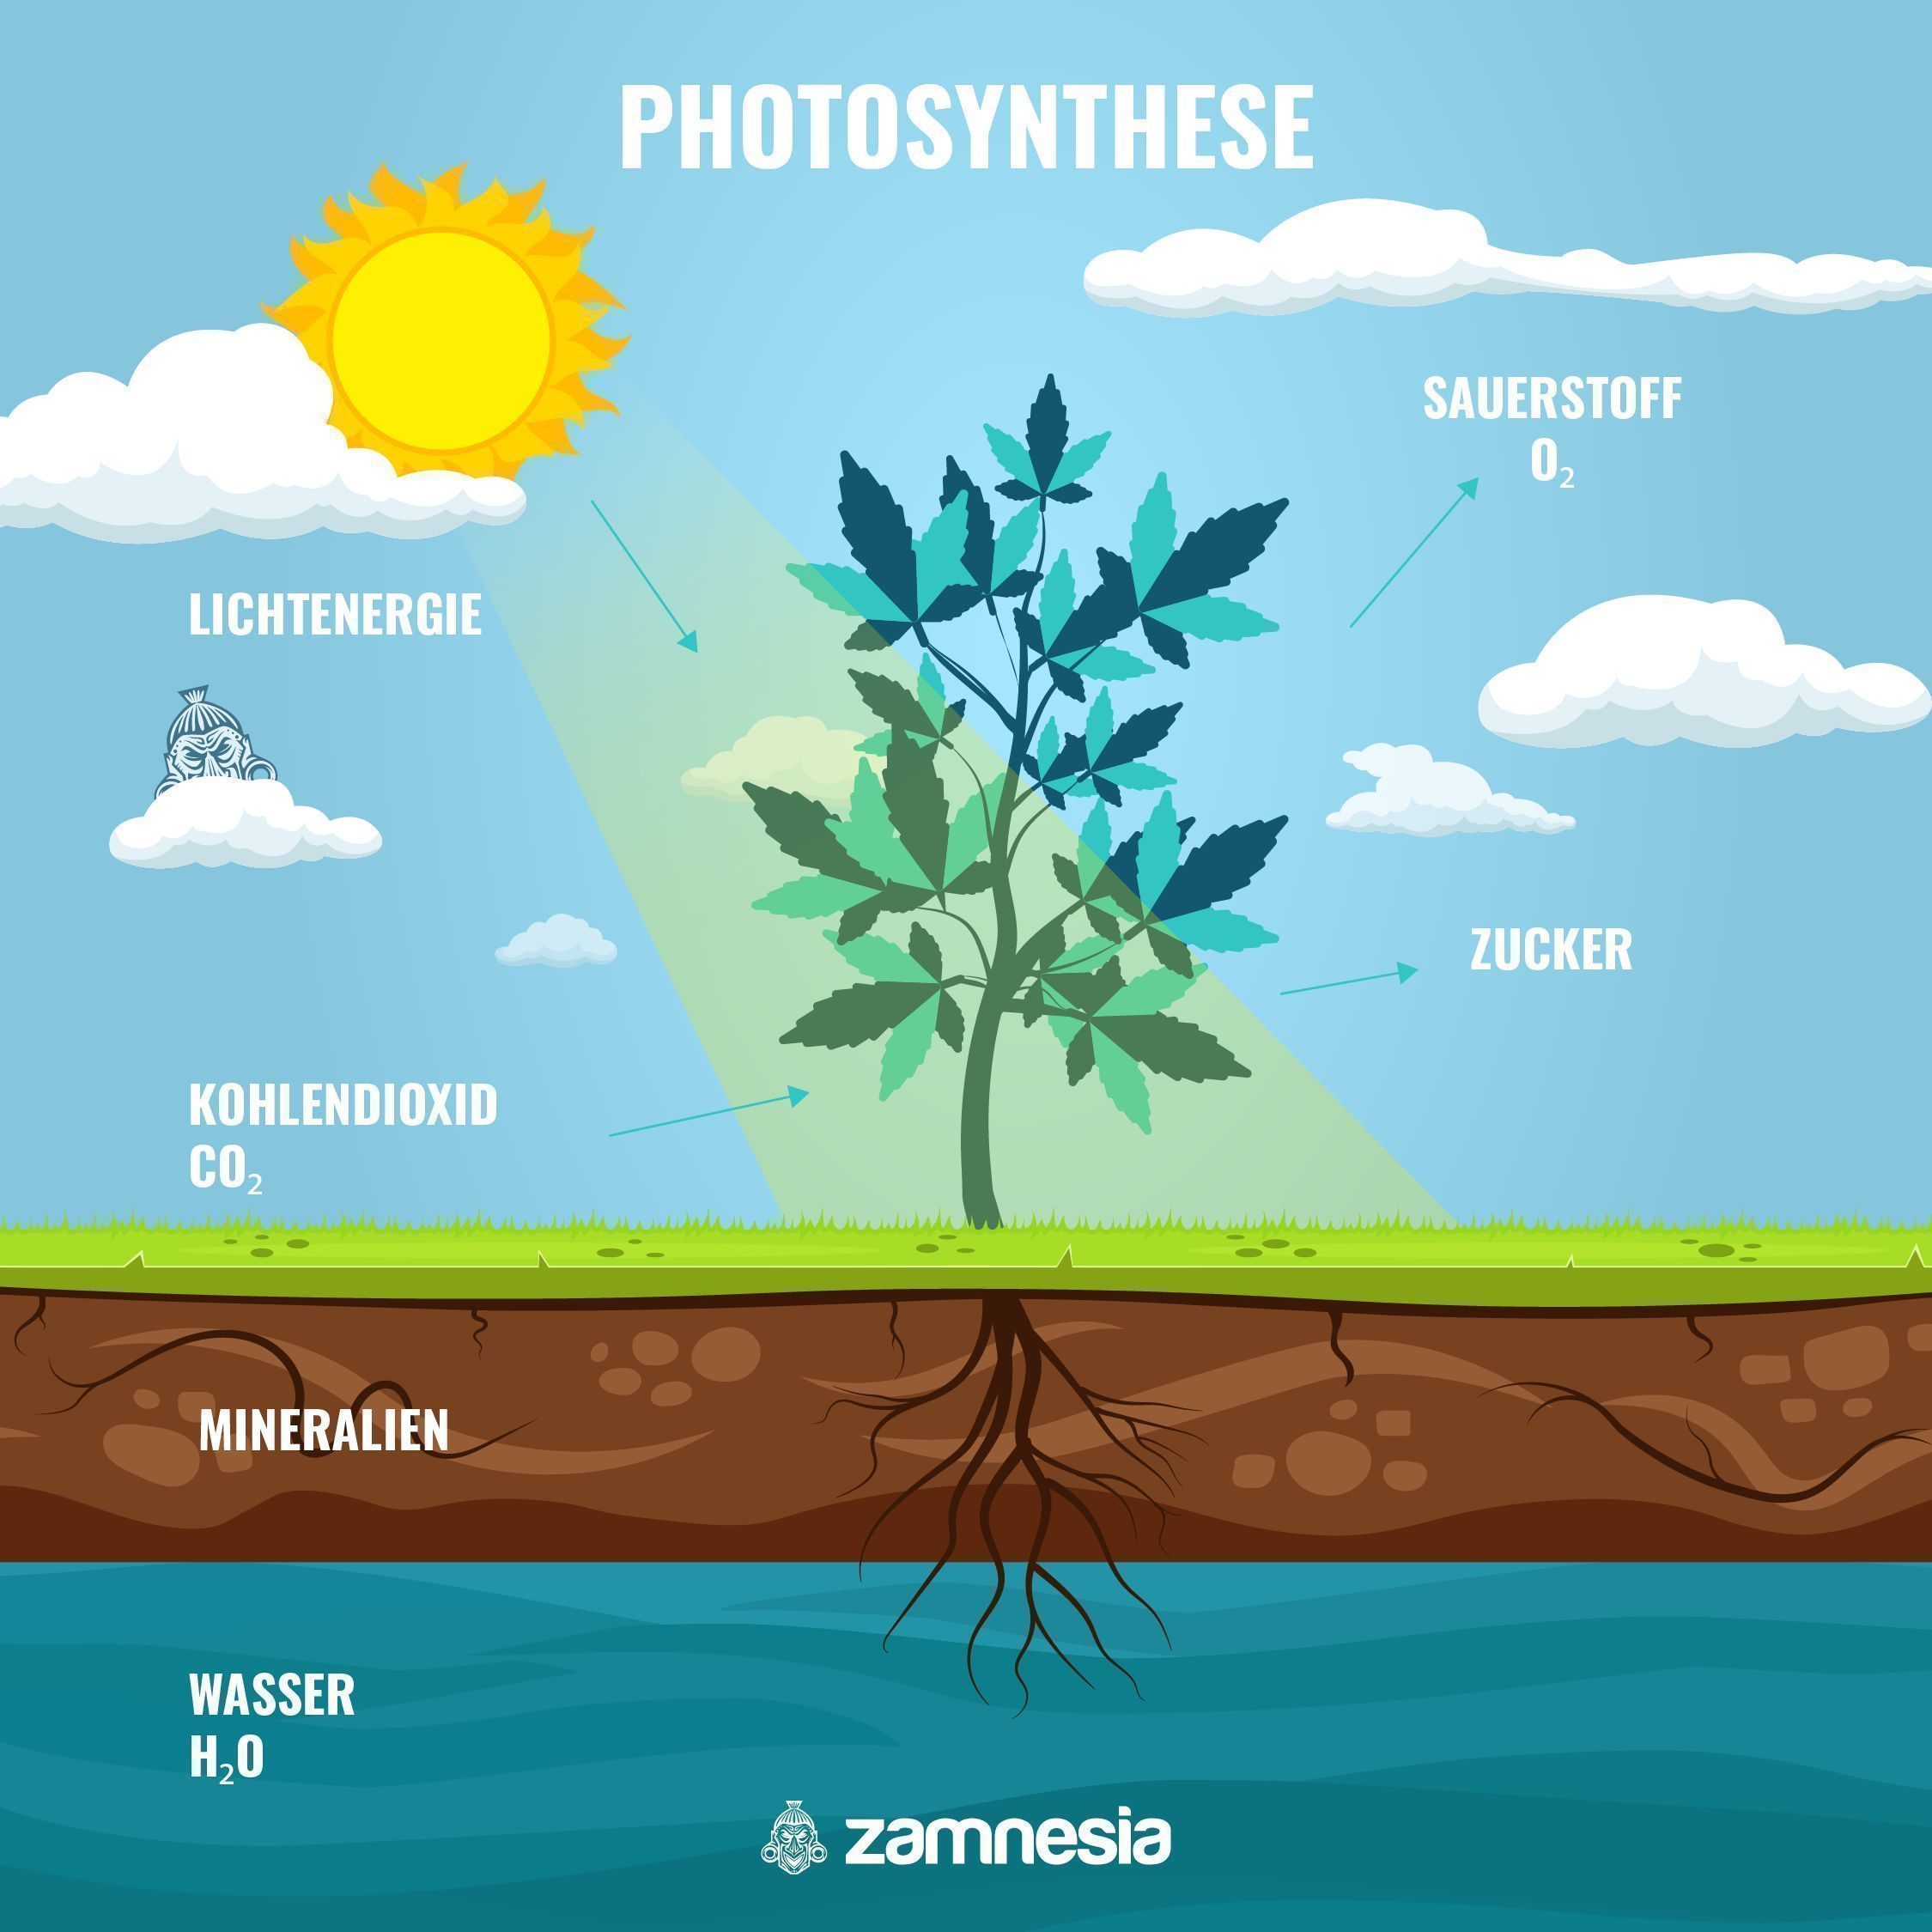 Was Ist Photosynthese?